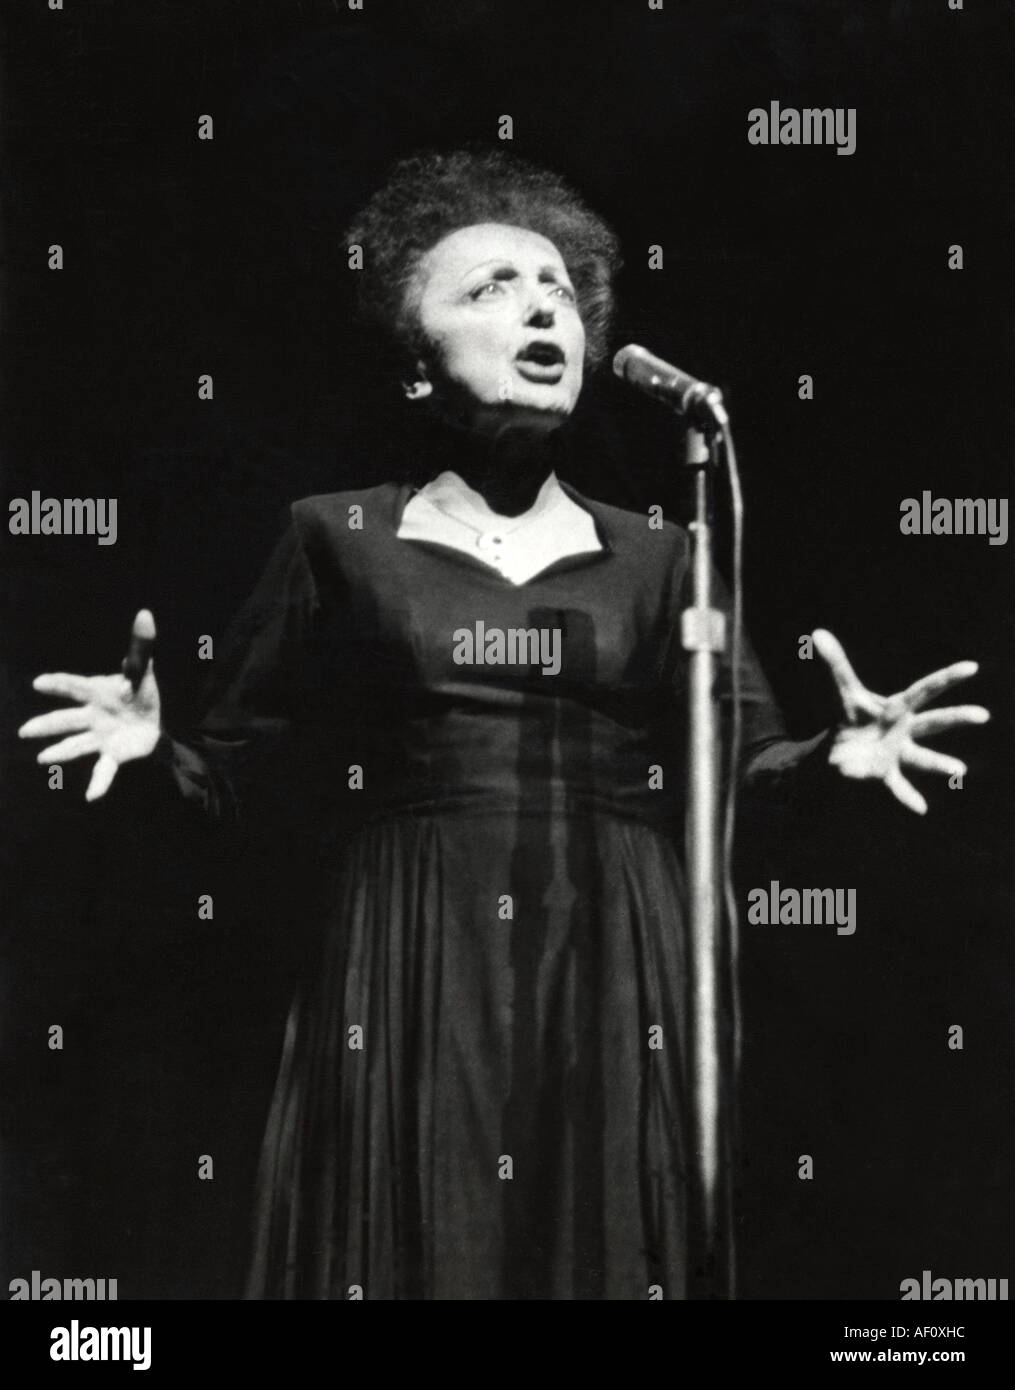 EDITH PIAF French singer about 1957 - Stock Image